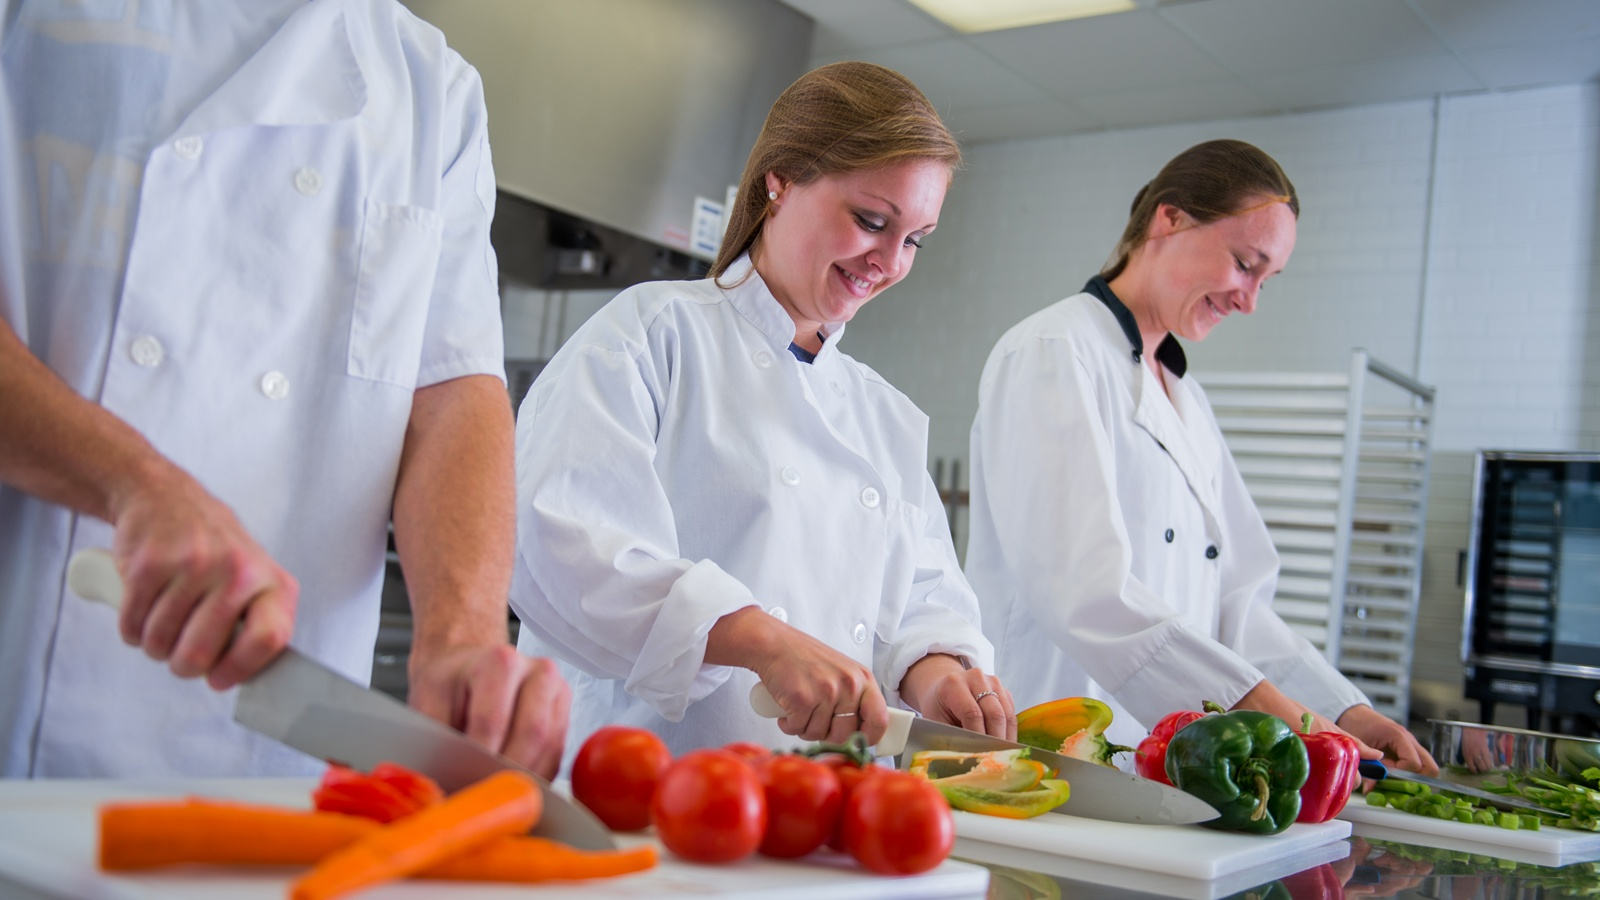 Featured Image for 4 Possible Career Paths for Dietetics Grads